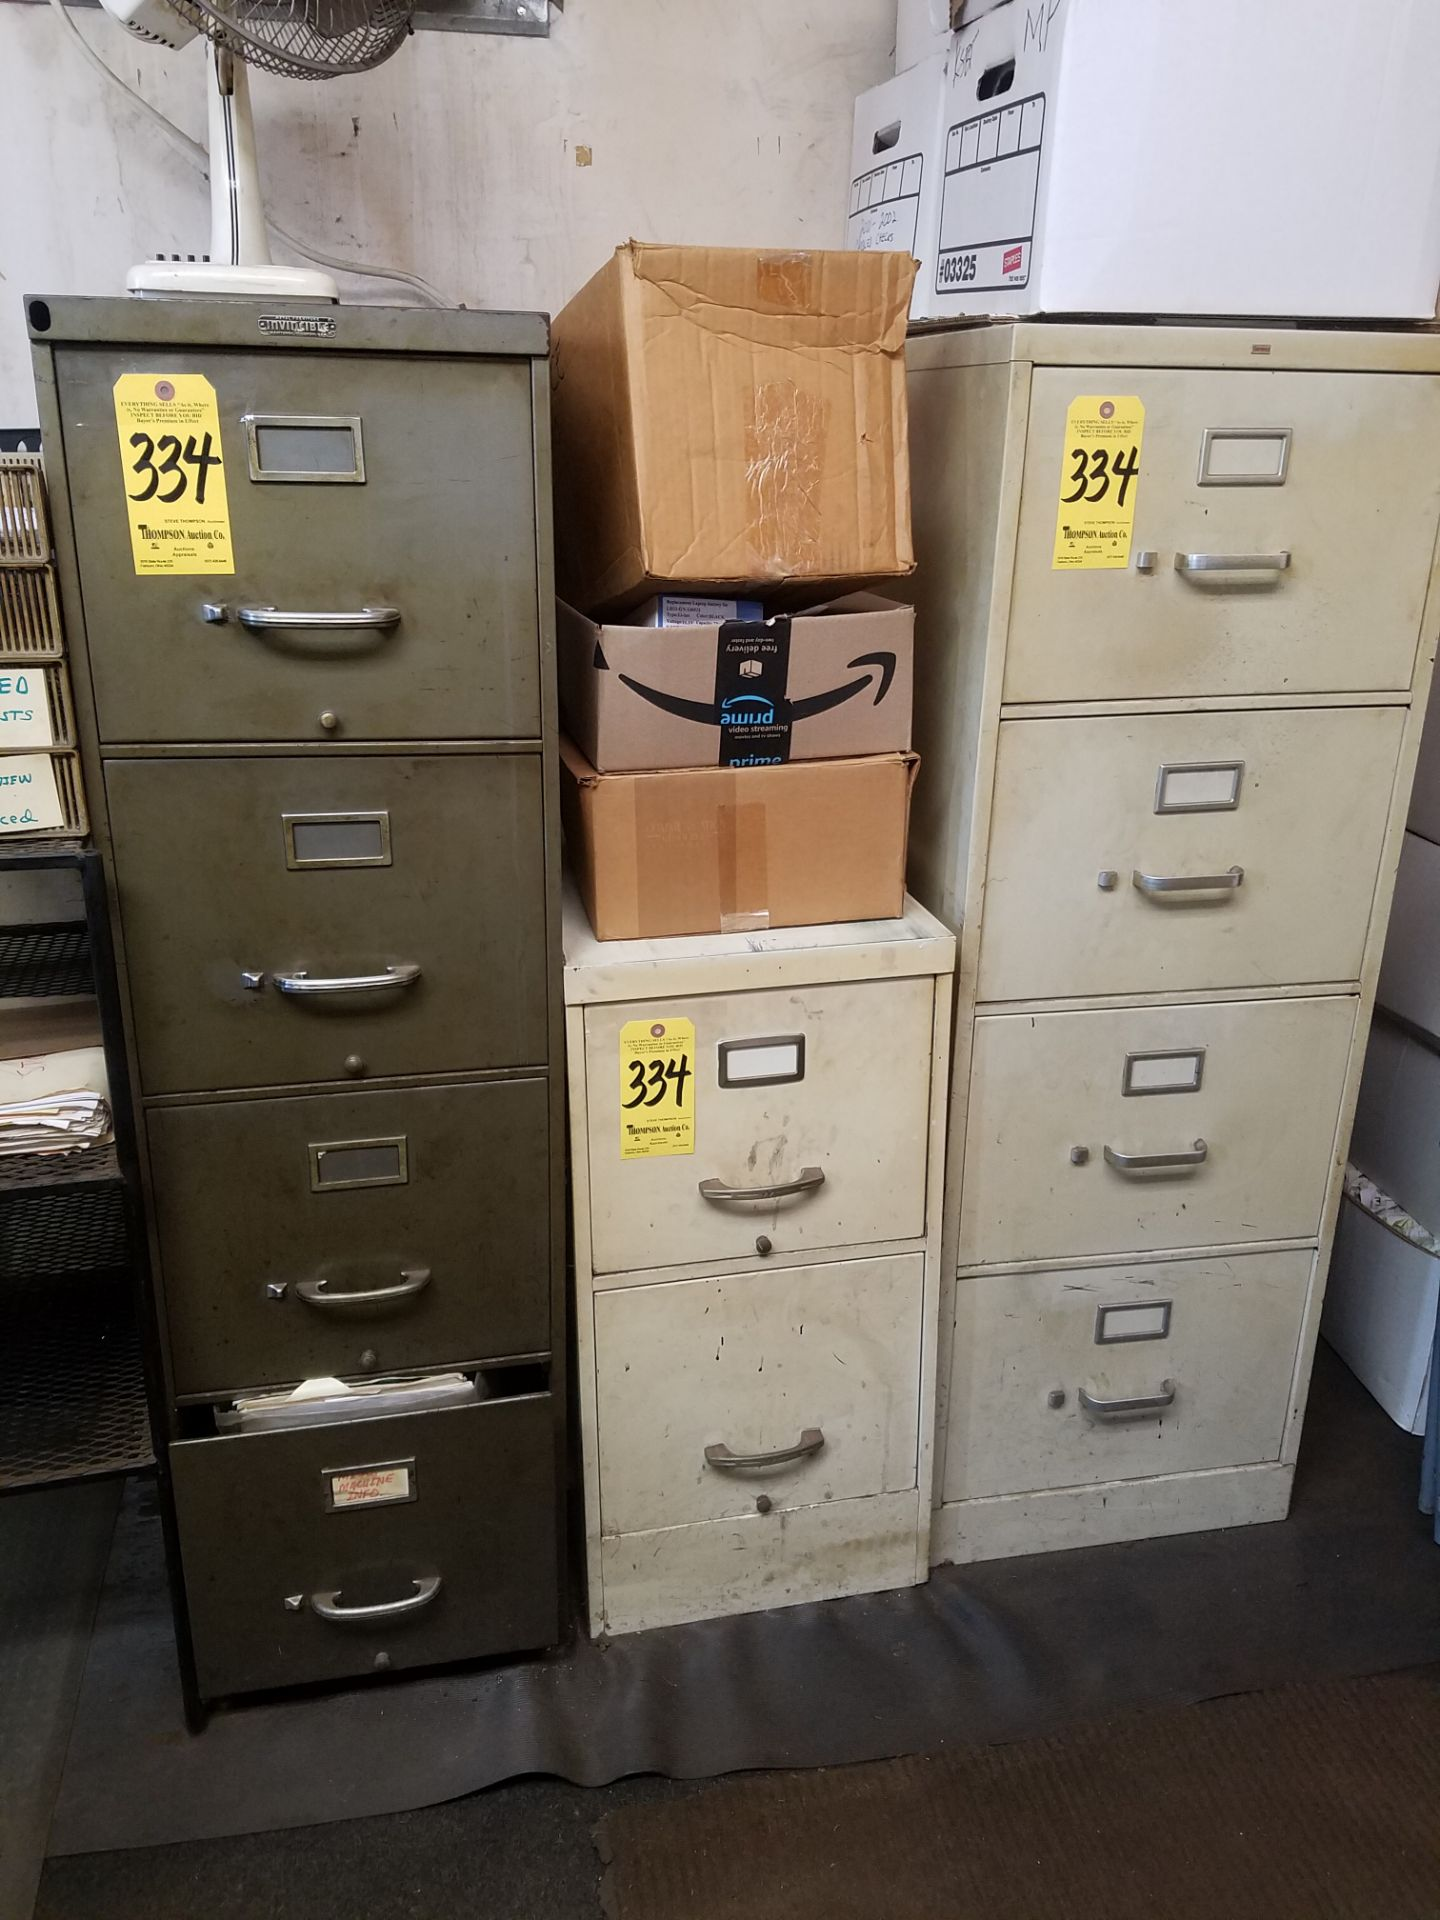 Lot 334 - (3) 4-drawer and (1) 2-drawer file cabinets, fax machine, metal desk, and wood credenza.